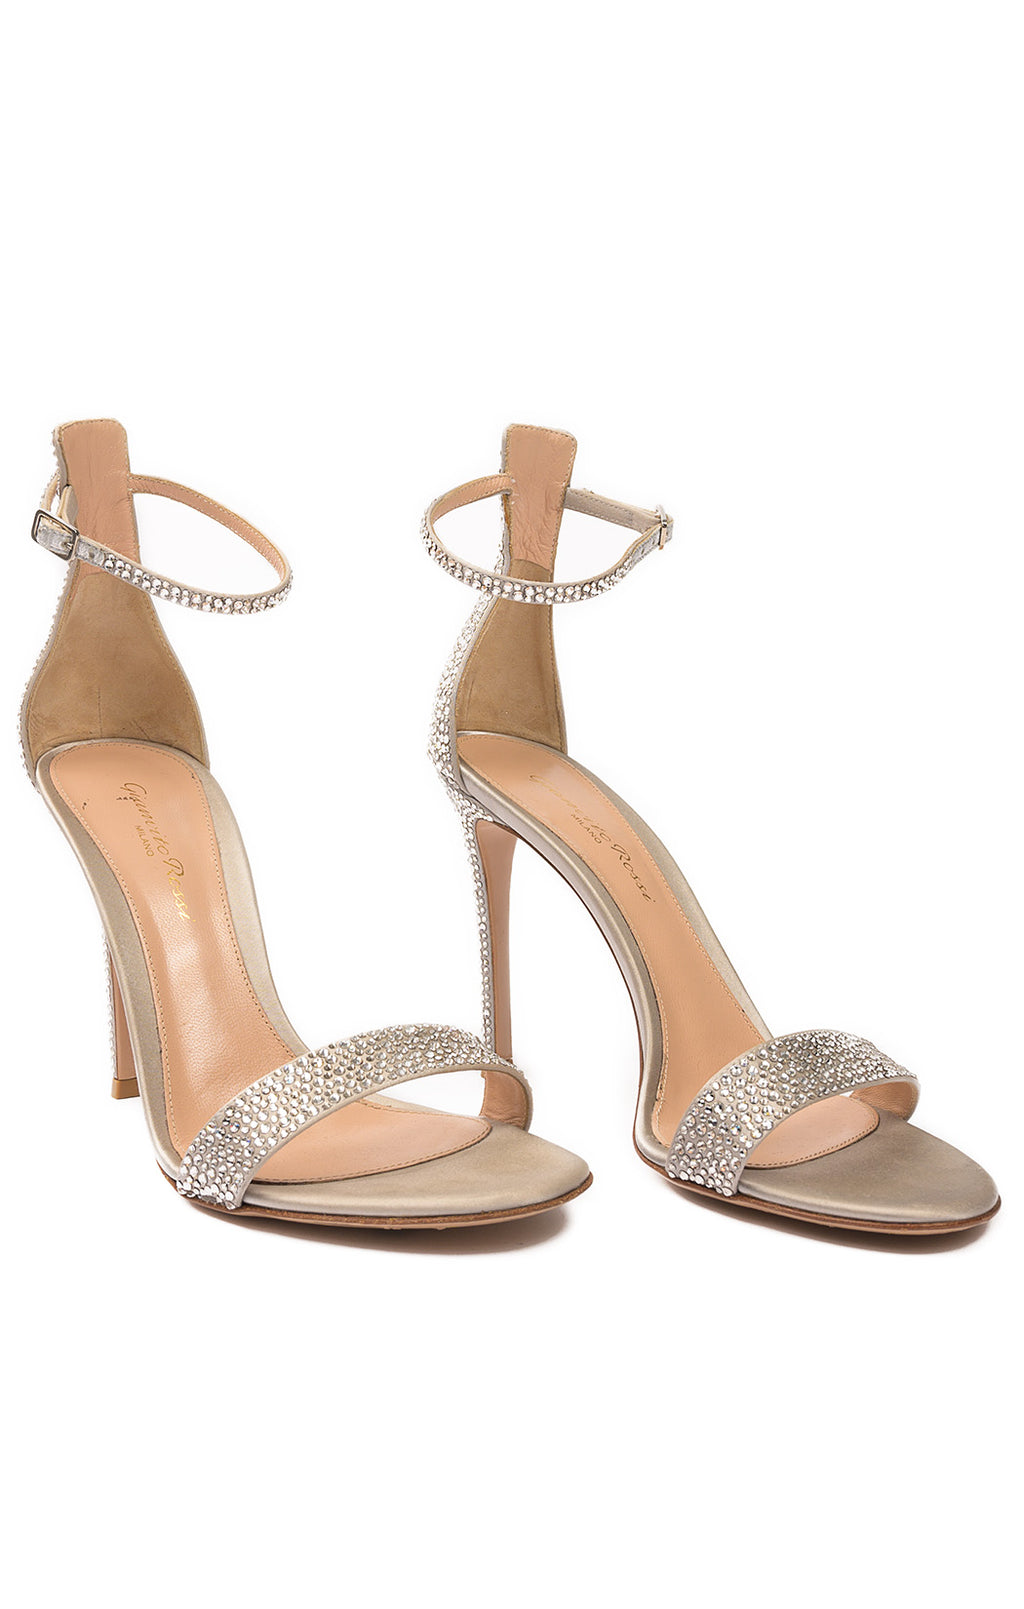 Front view of GIANVITTO ROSSI Sandals Size: 37.5/ 7.5